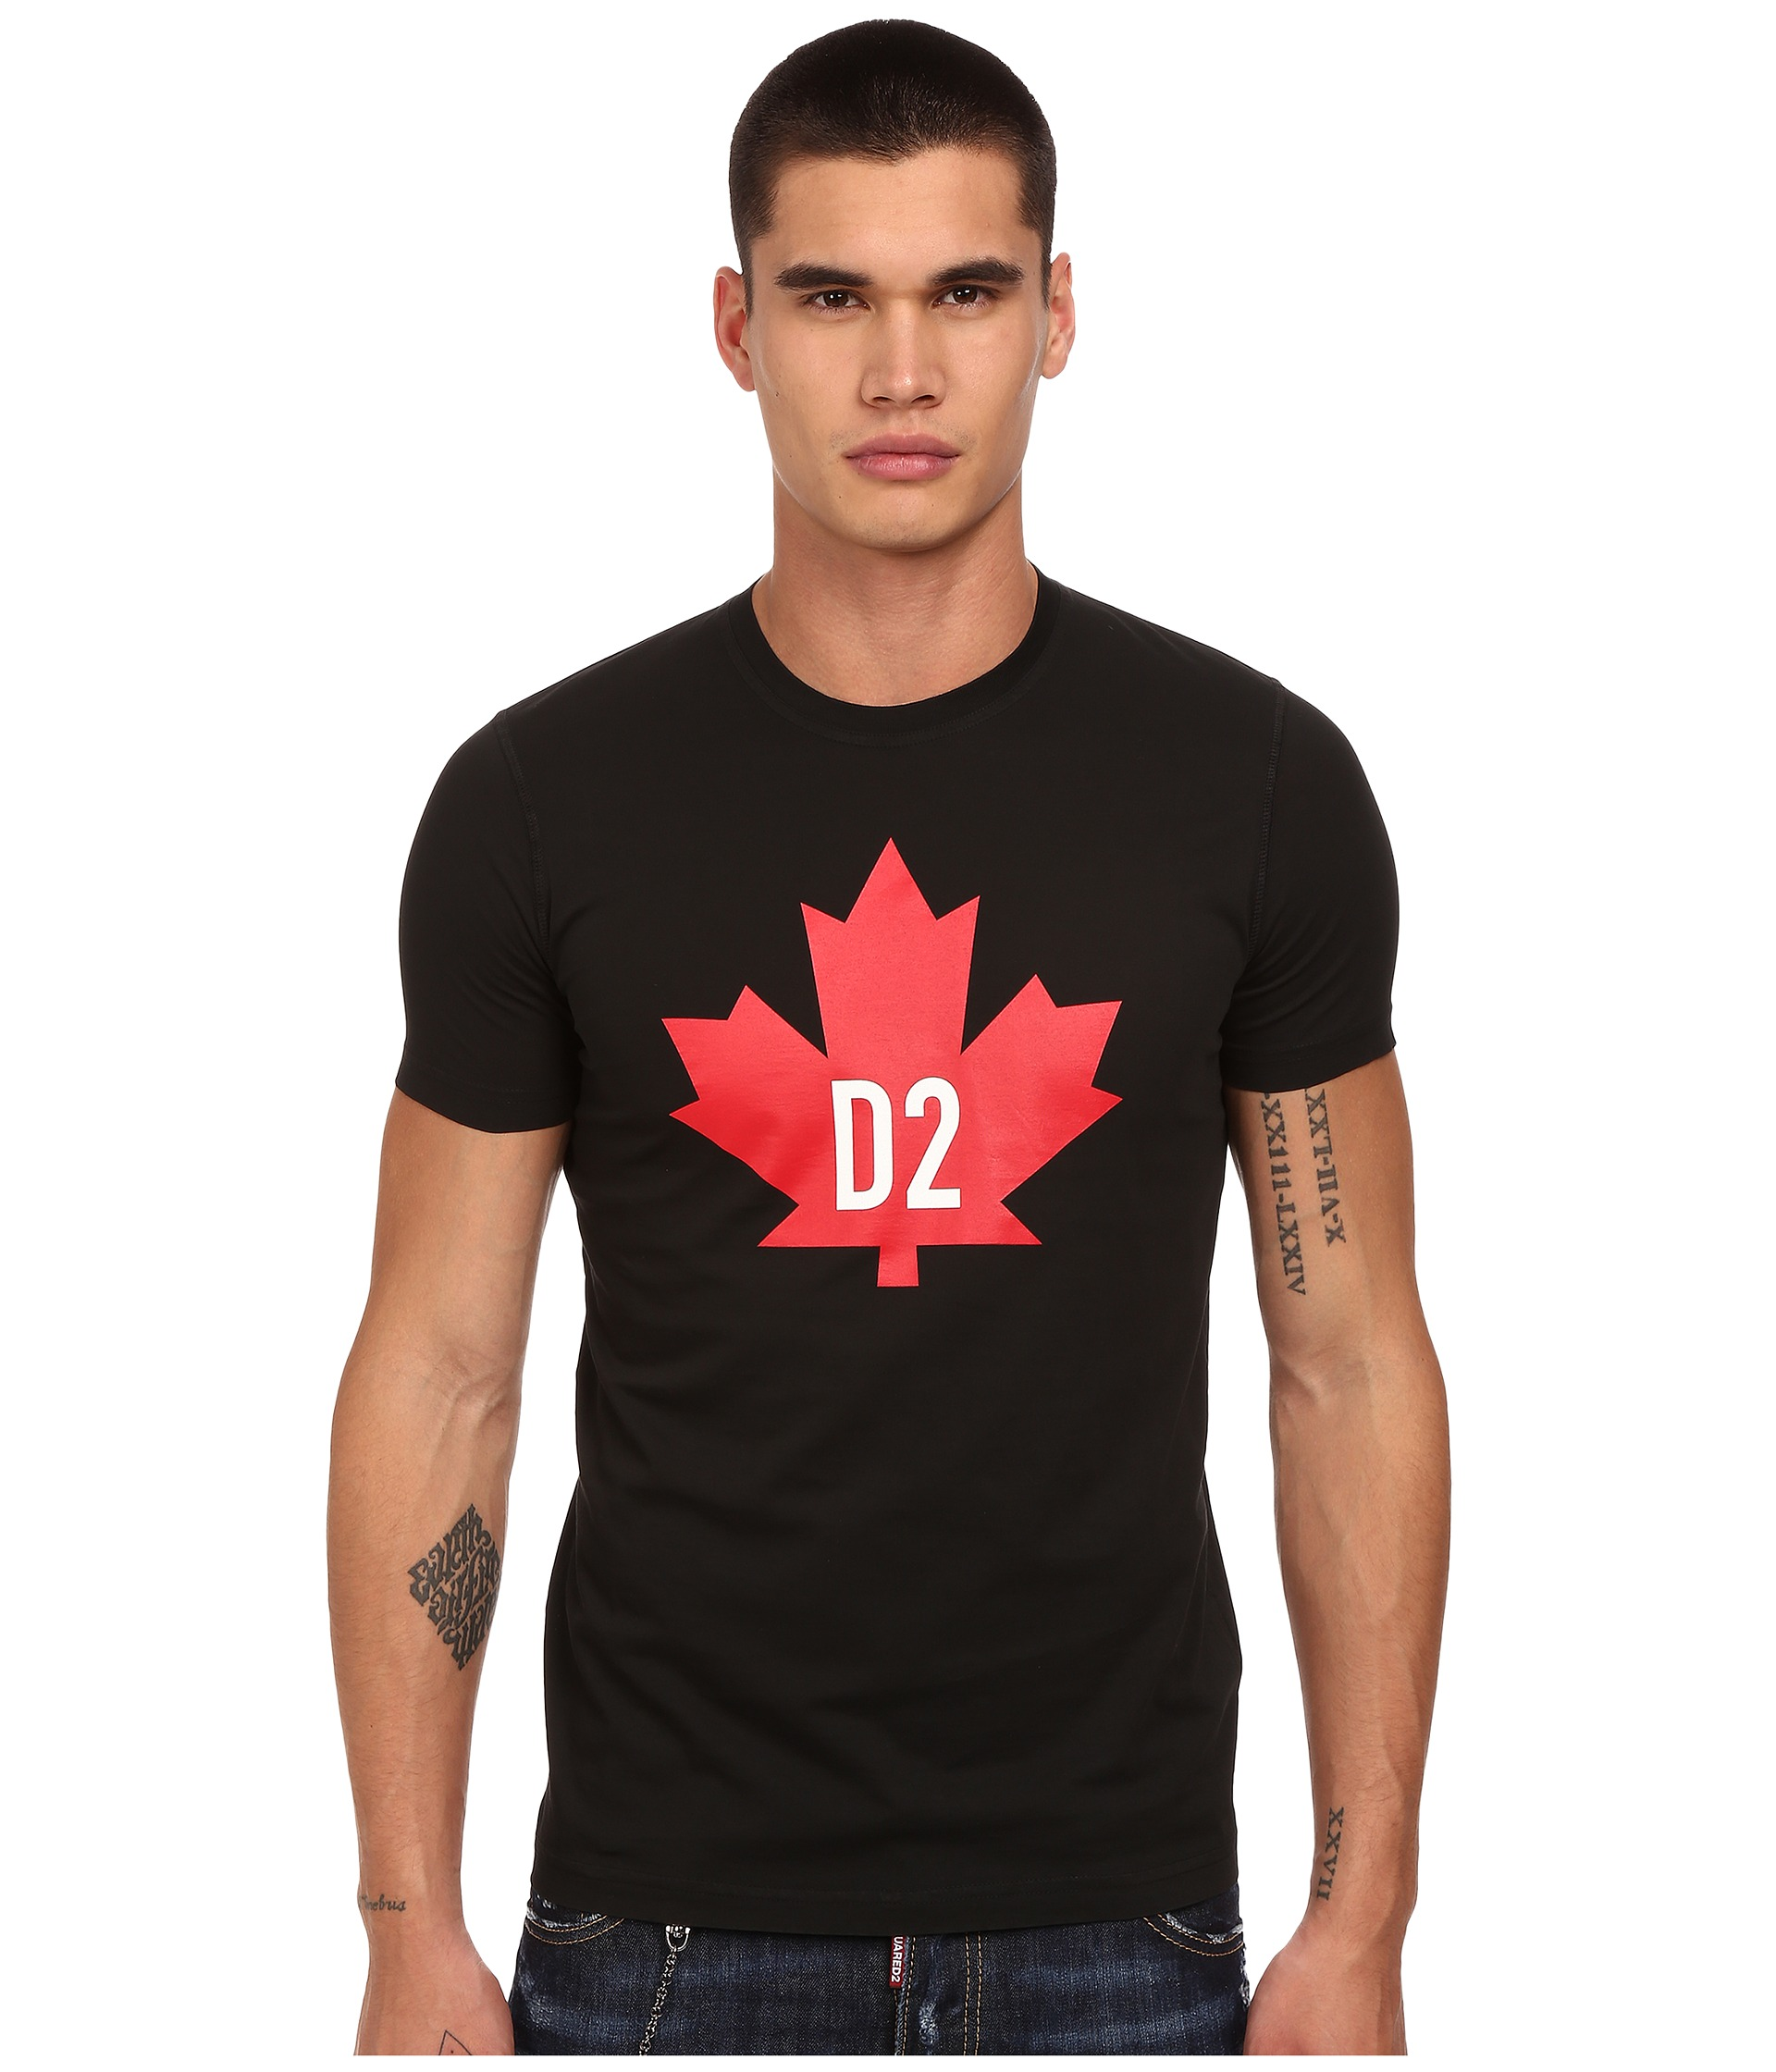 dsquared2 maple leaf d2 classic fit t shirt free shipping both ways. Black Bedroom Furniture Sets. Home Design Ideas